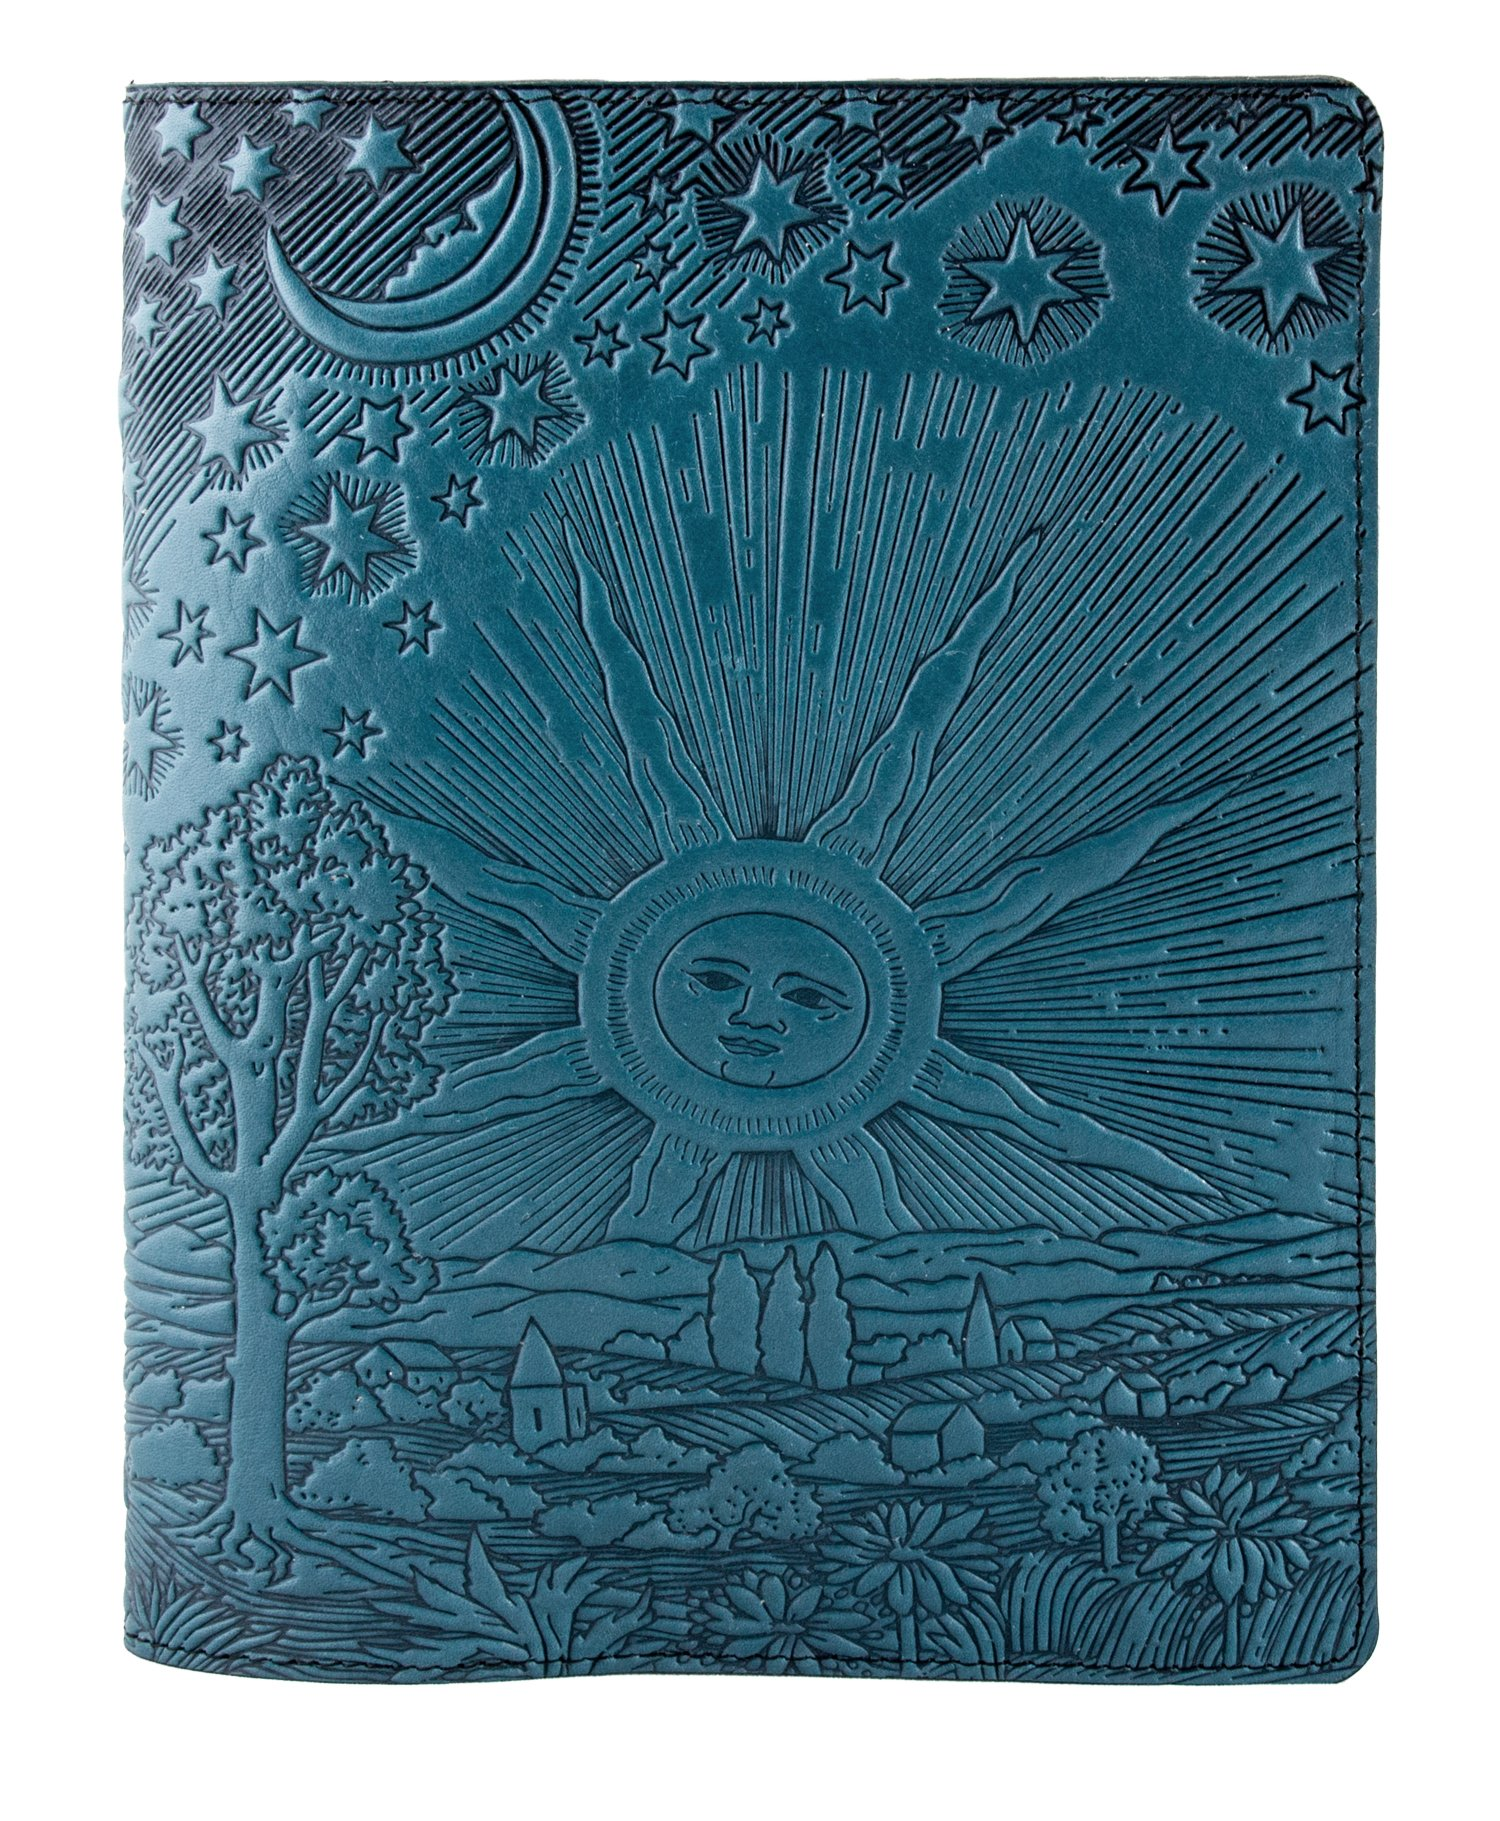 Genuine Leather Composition Notebook Cover + Insert - 8.25 x 10.25 Inches - Roof of Heaven, Sky Blue - Benchcrafted in the USA by Oberon Design